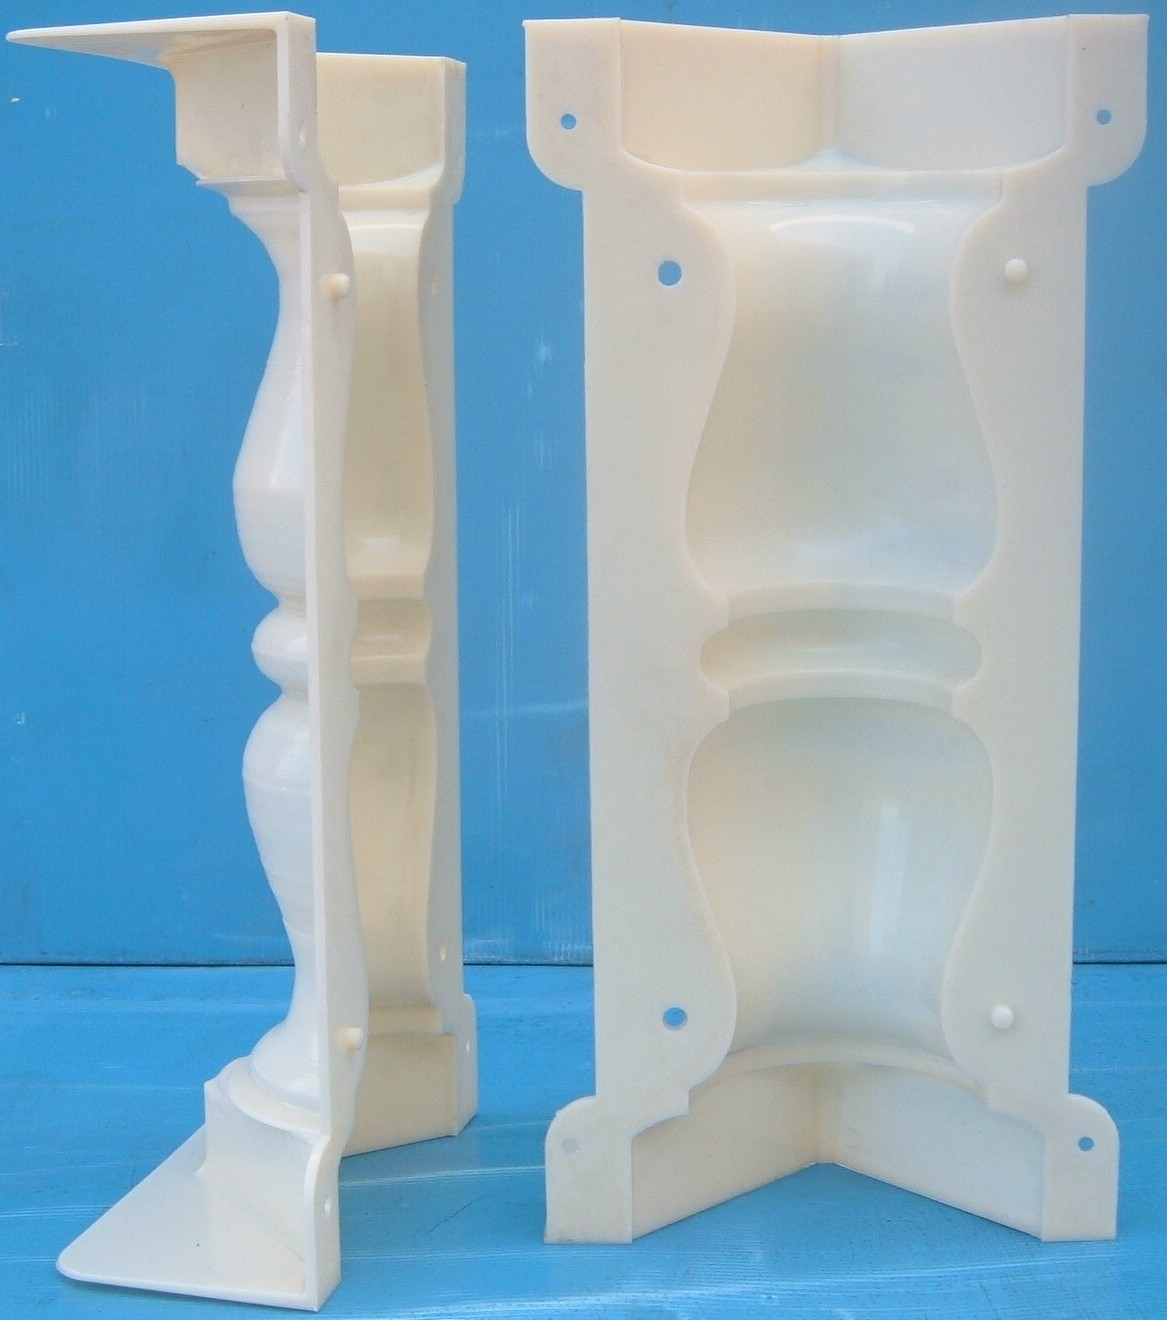 Baluster mold n9 (click on the image)